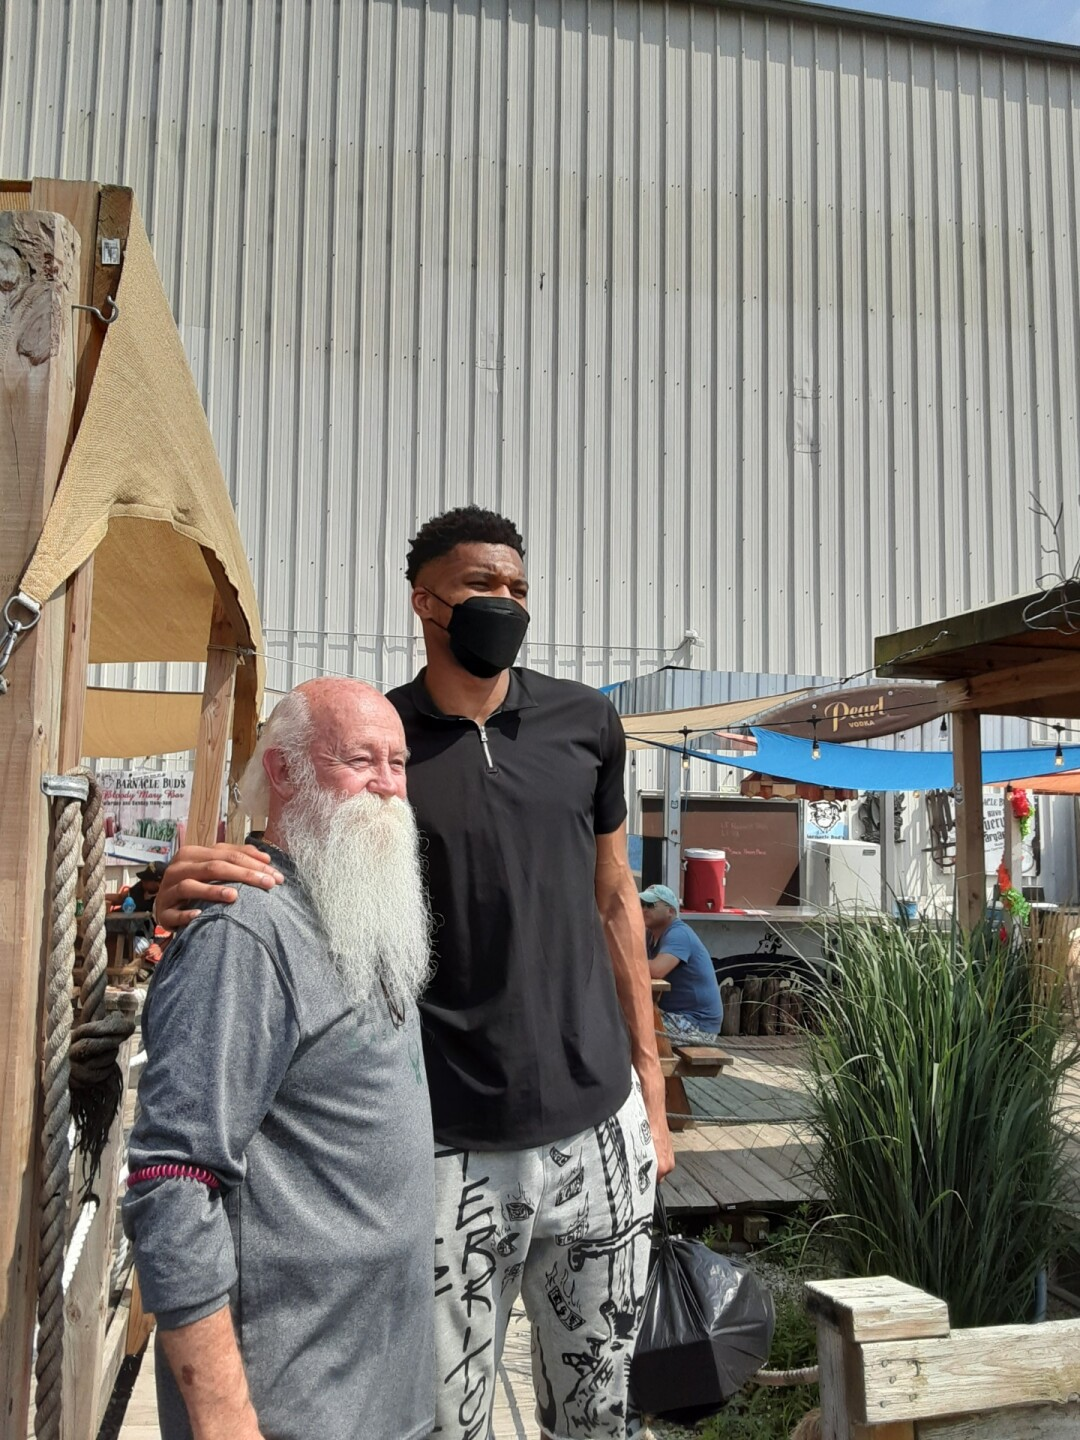 Owner Gene McKiernan and Giannis Antetokounmpo snap a picture after the NBA star leaves Barncle Buds